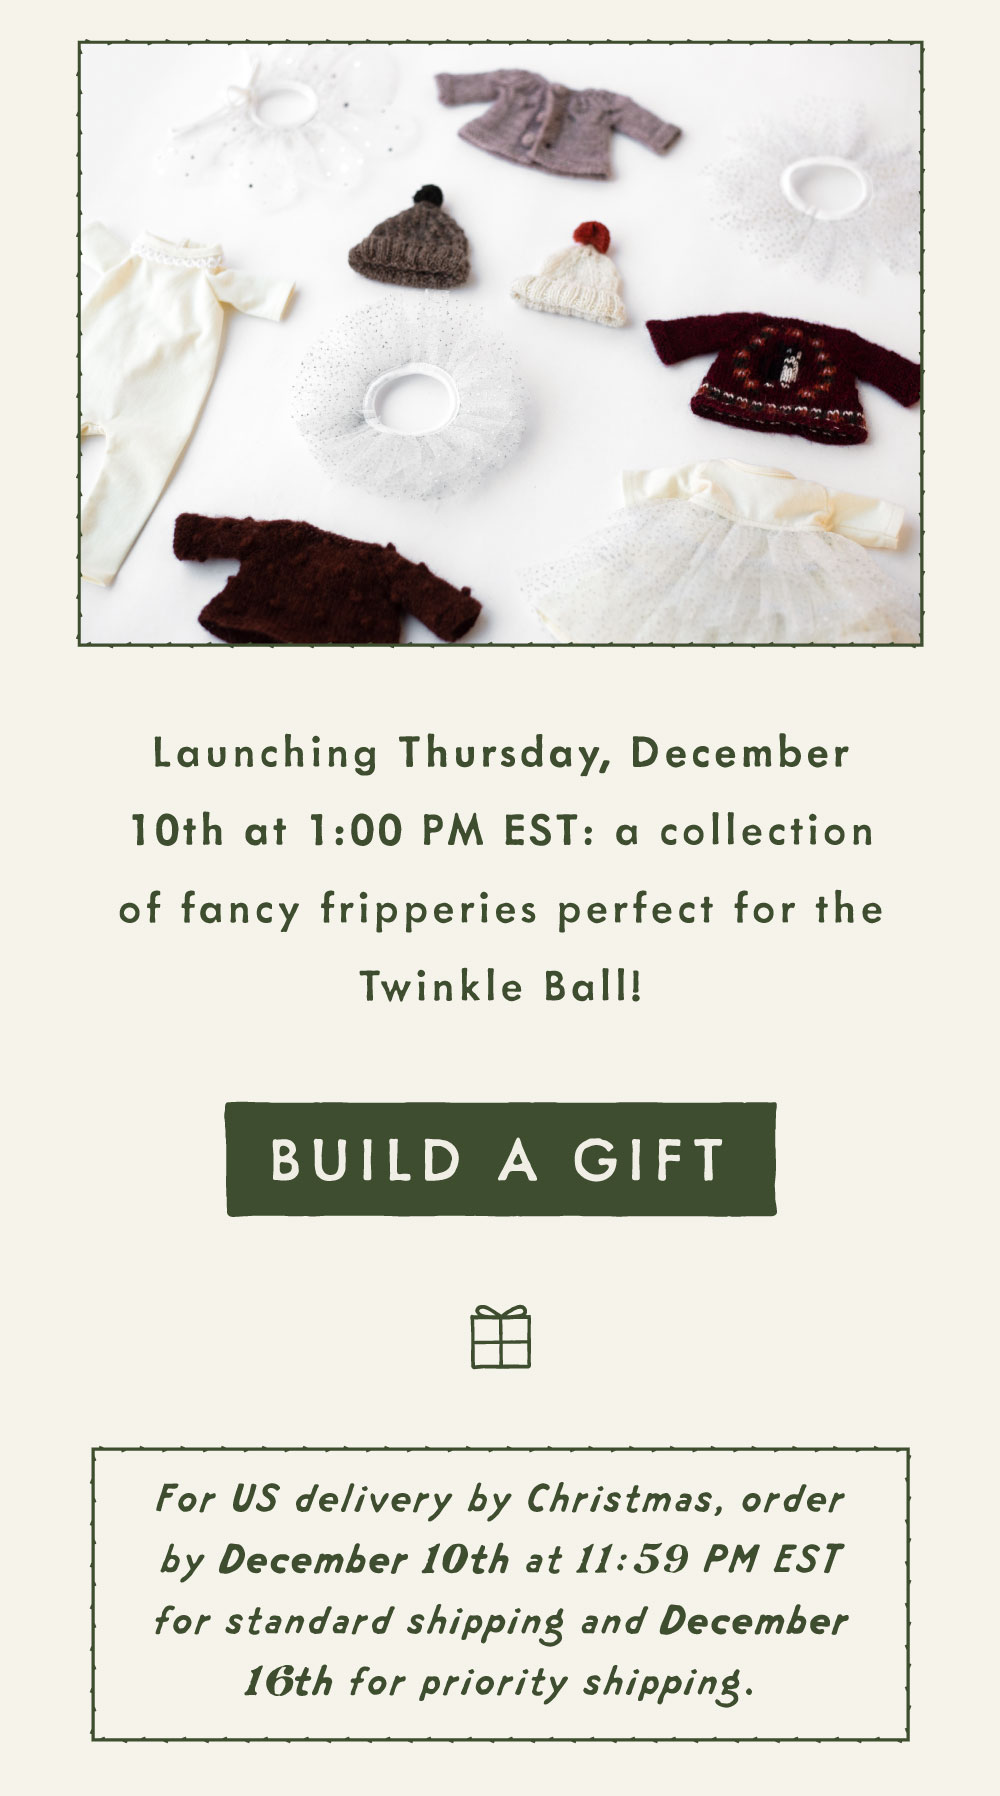 Launching Thursday, December 10th at 1:00 PM EST: a collection of fancy fripperies perfect for the Twinkle Ball! For US delivery by Christmas, order by 12/10 at 11:59 PM EST for standard shipping and 12/16 for priority shipping.